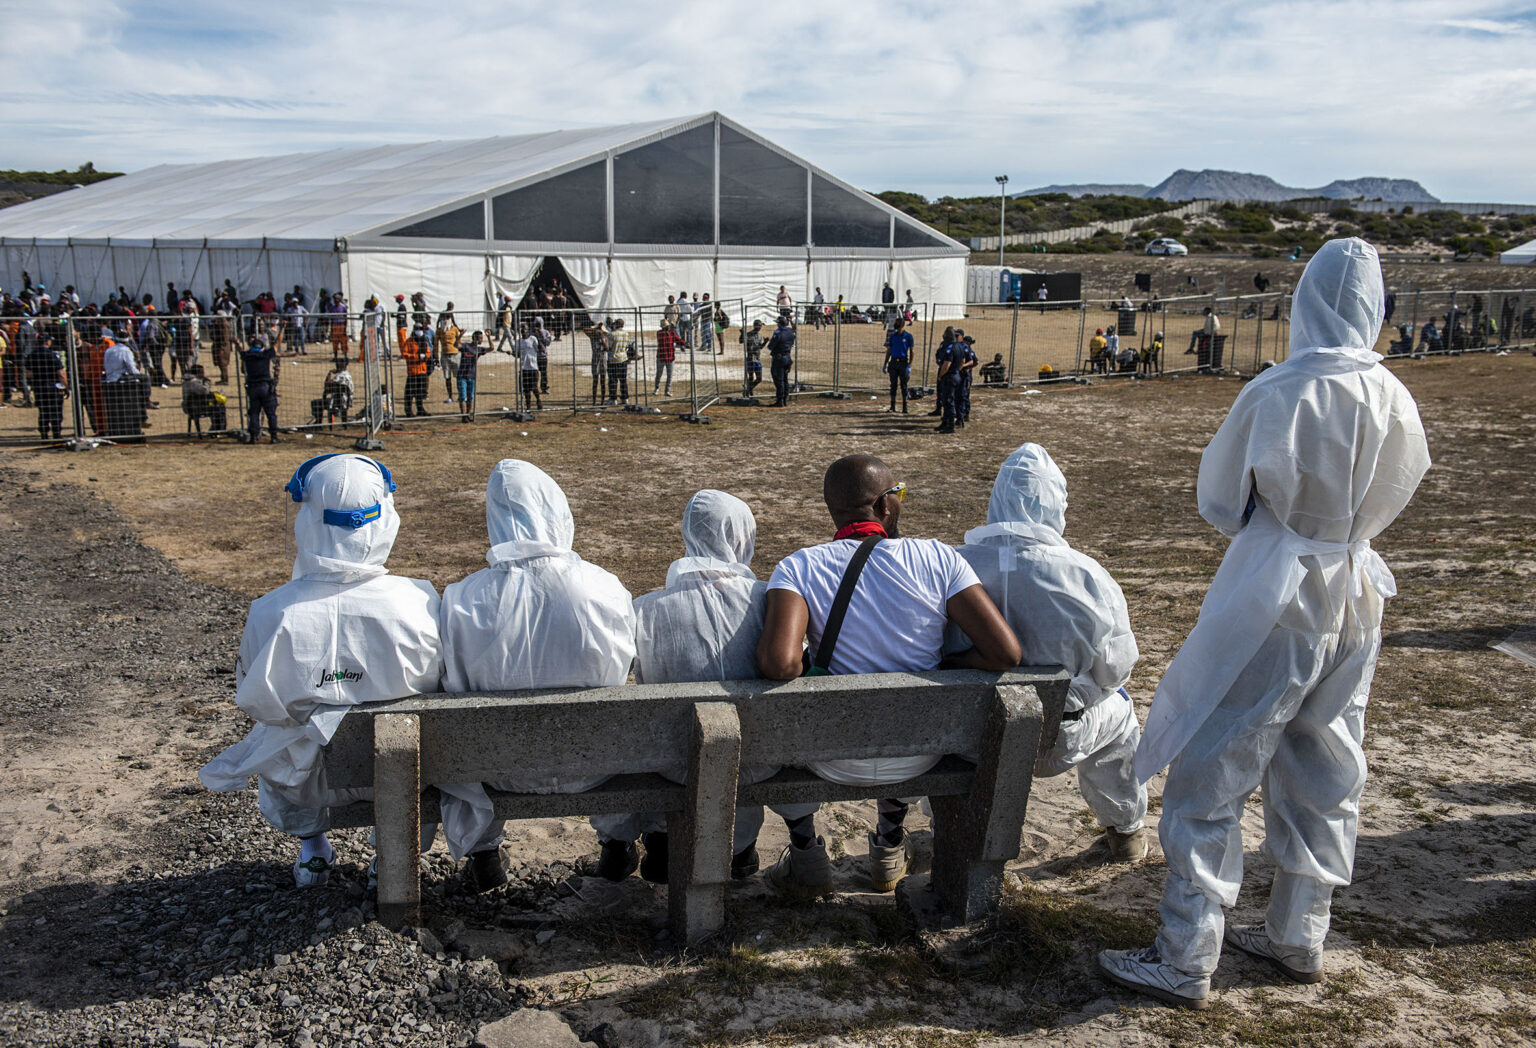 """Lawyers for Human Rights, """"Strandfontein Homeless Committee Takes on City of Cape Town,"""" 19 May 2020, https://www.lhr.org.za/lhr-news/strandfontein-homeless-committee-takes-on-city-of-cape-town"""